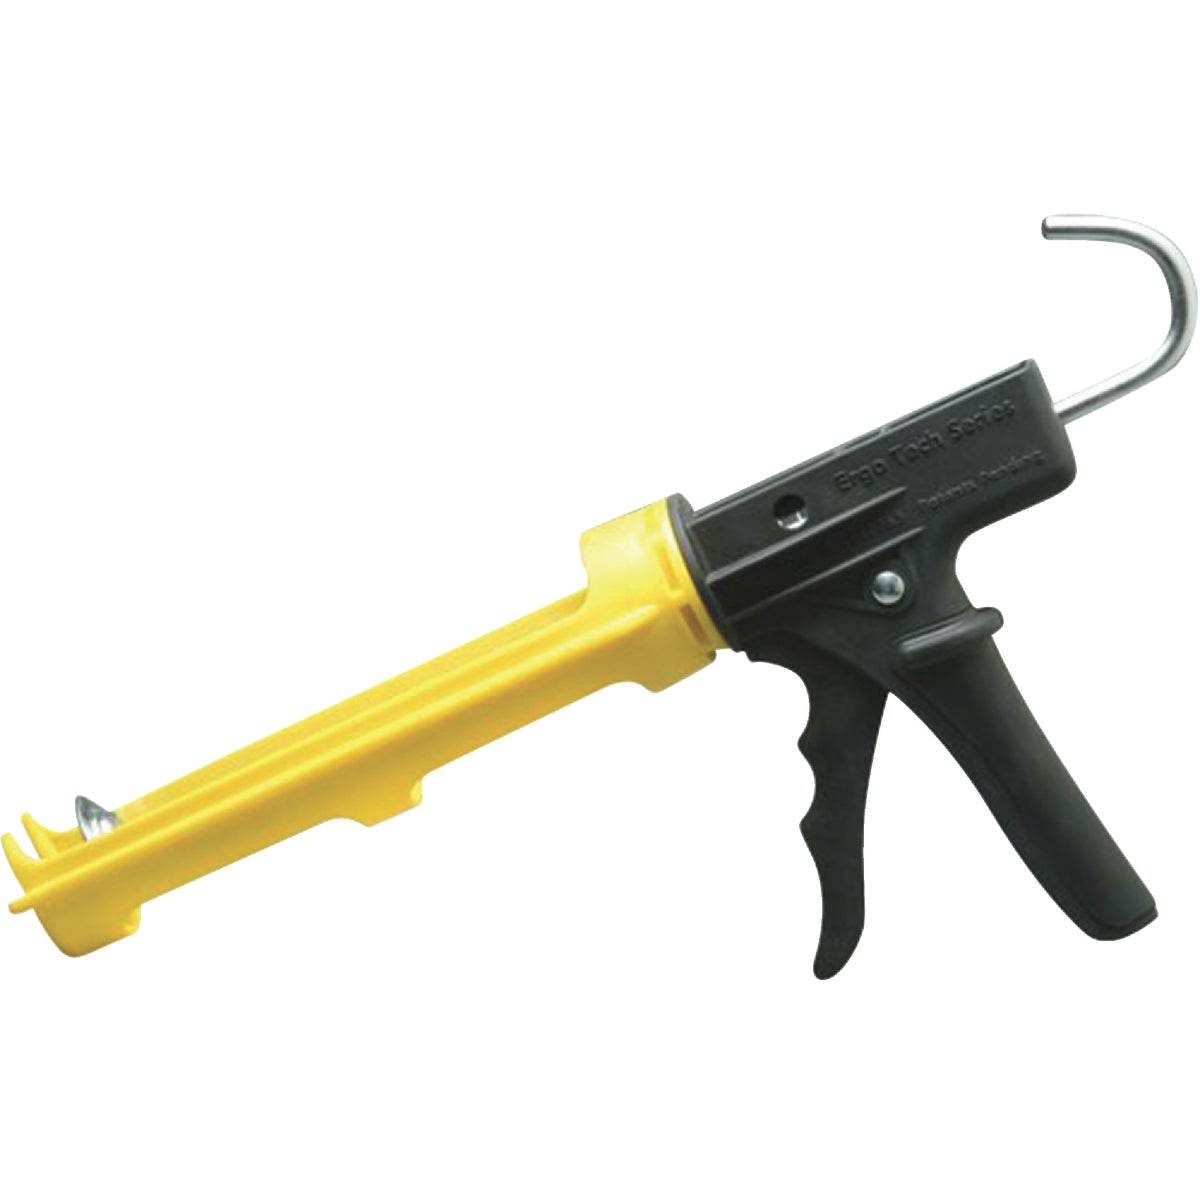 10OZ ERGO CAULK GUN - ETS2000 by Dripless Inc